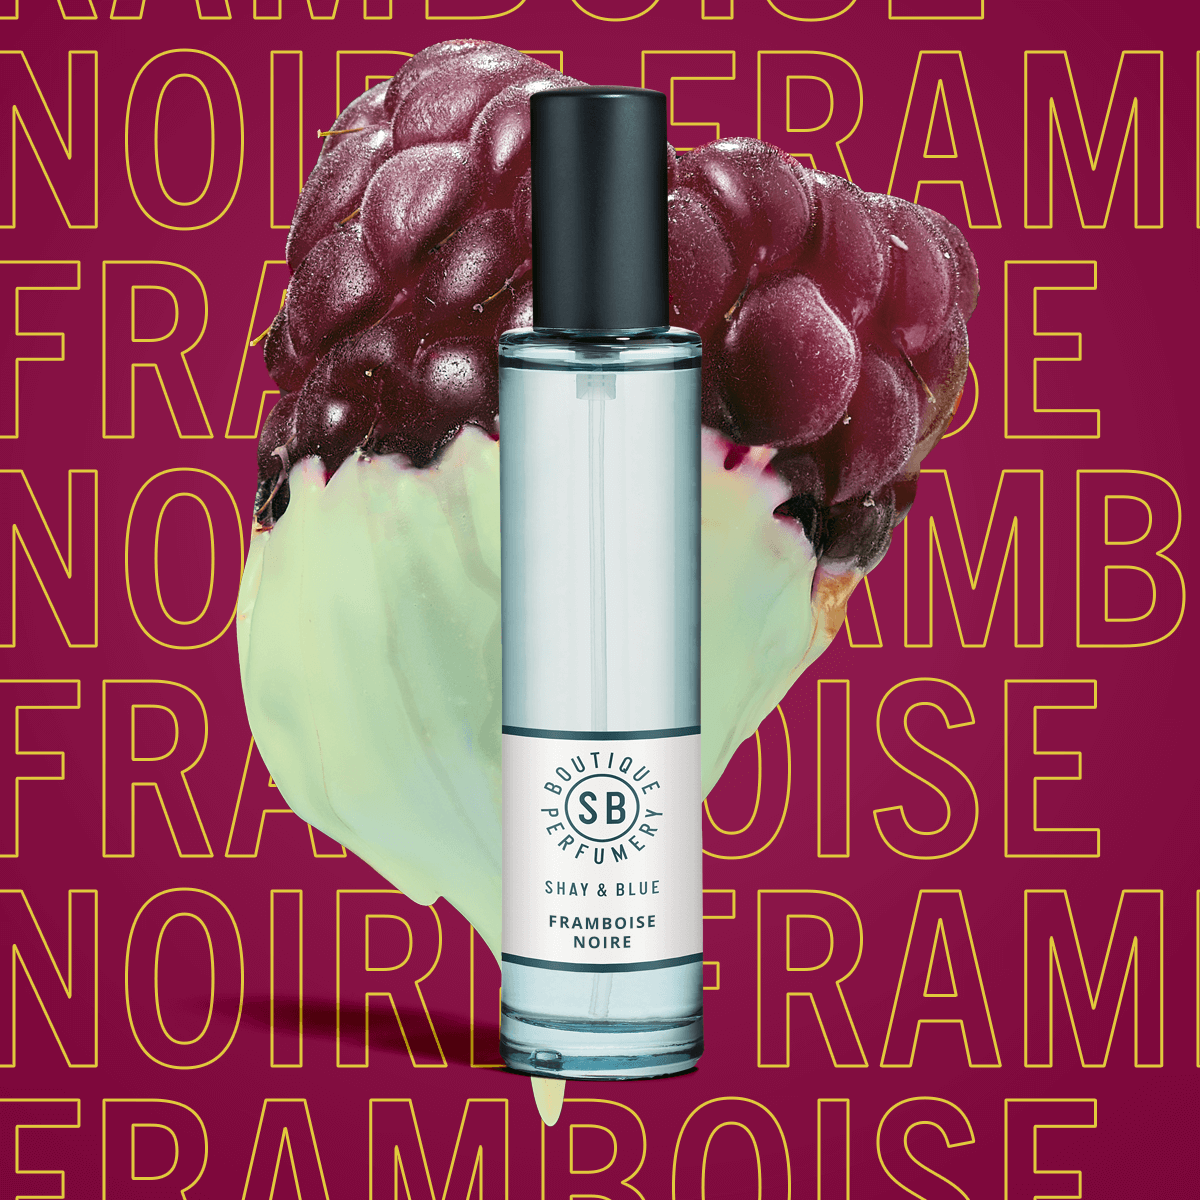 Framboise Noire Fragrance 30ml | Black raspberry and forest berries deepen with the heart of black wood. | Clean All Gender Fragrance | Shay & Blue